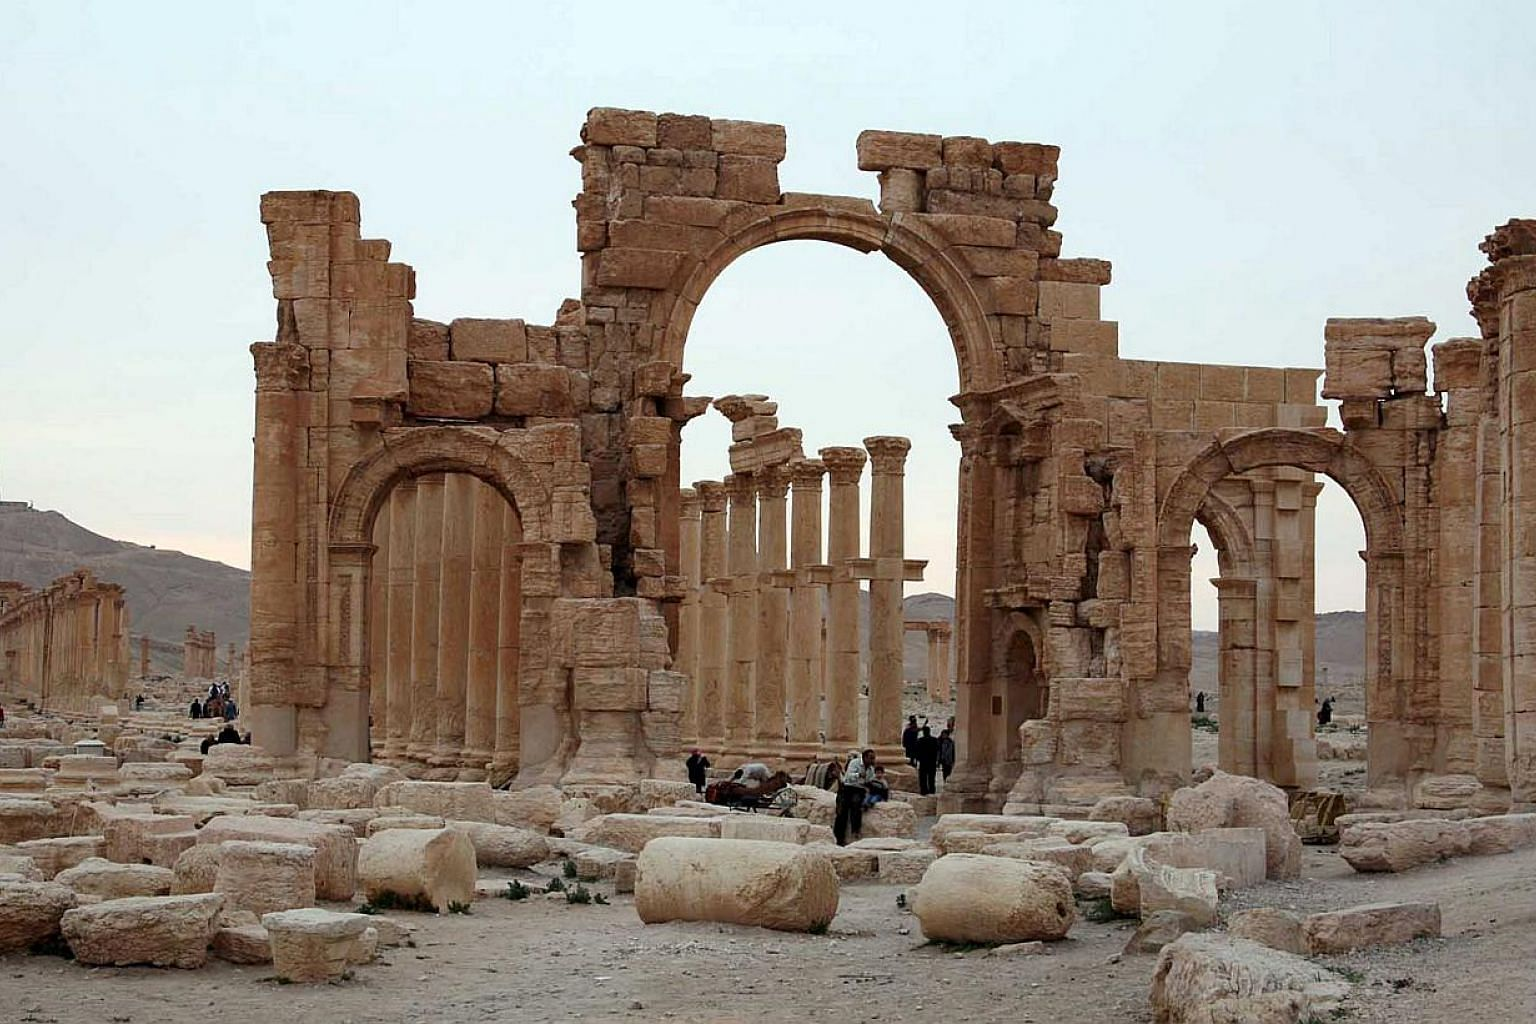 Tourists walk in the historical city of Palmyra, on April 14, 2007.Militants from the Islamic State in Iraq and Syria (ISIS) on Thursday, May 28, 2015, have posted photographs online which it said were taken in the central Syrian city of Palmyr